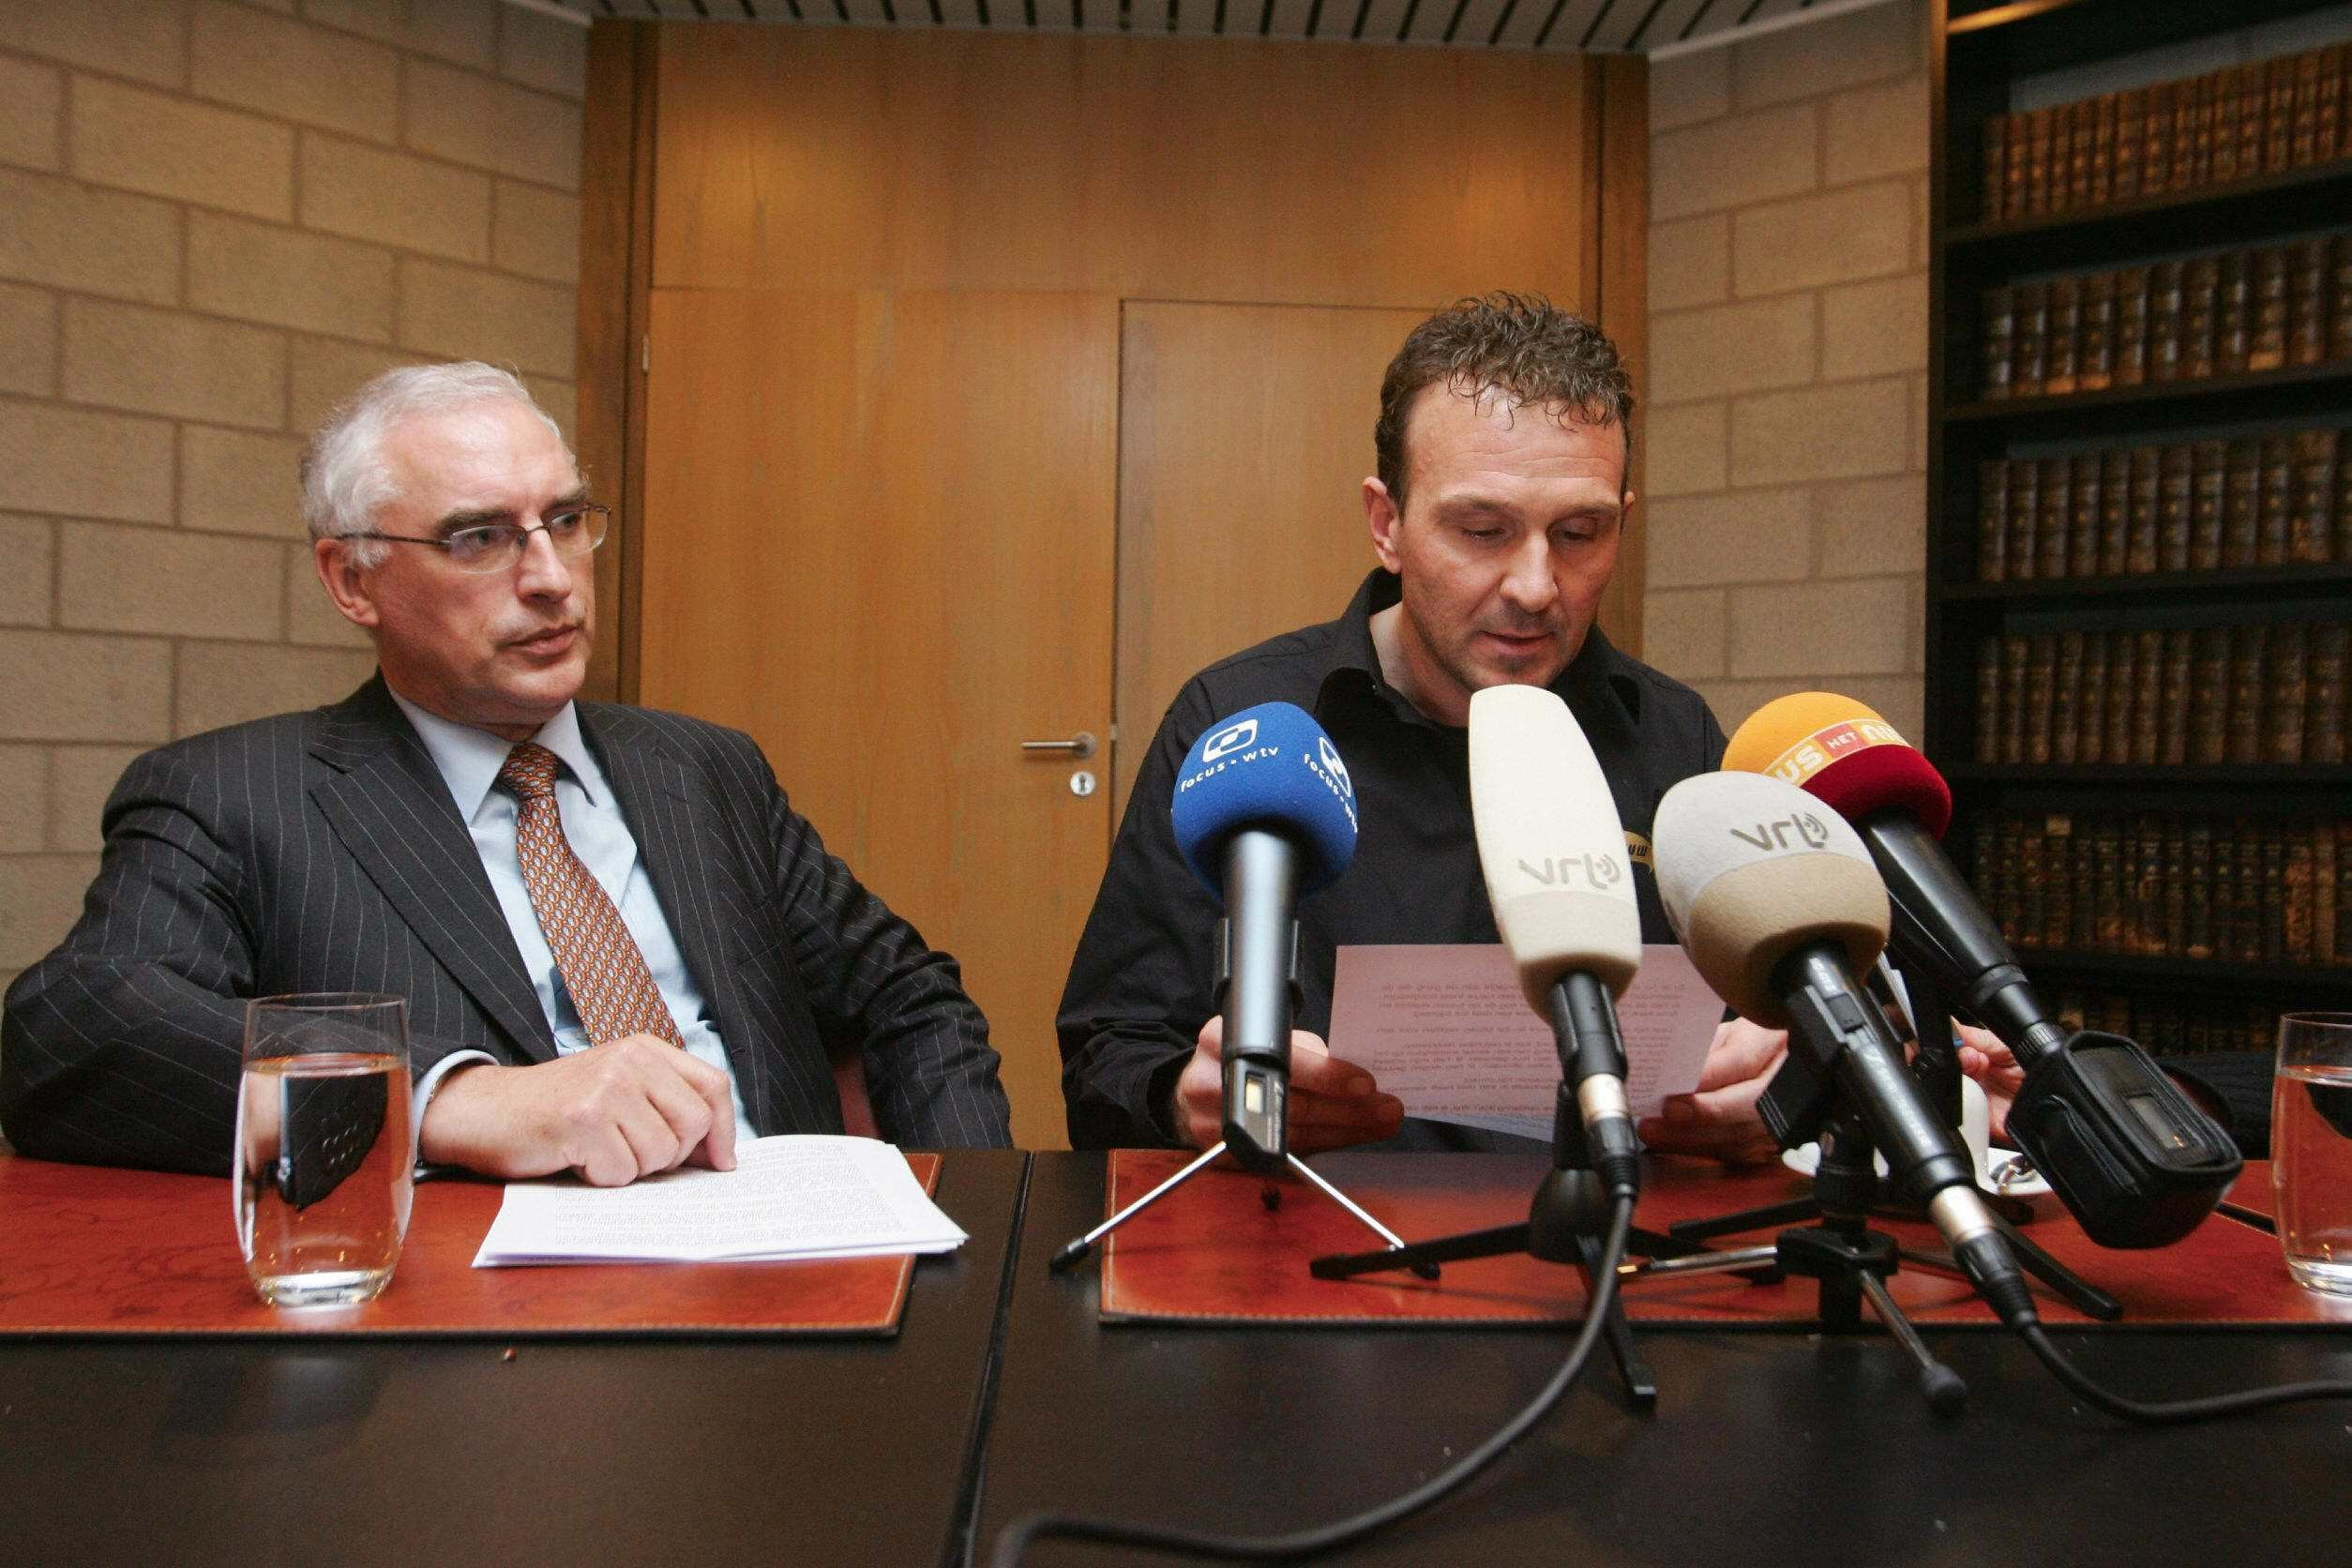 Former cyclist Belgian Johan Museeuw (R) gives a press conference next to his lawyer Jozef Lievens (L), 23 January 2007 in Kortrijk, in which he admitted to have used doping products during his cycling years.